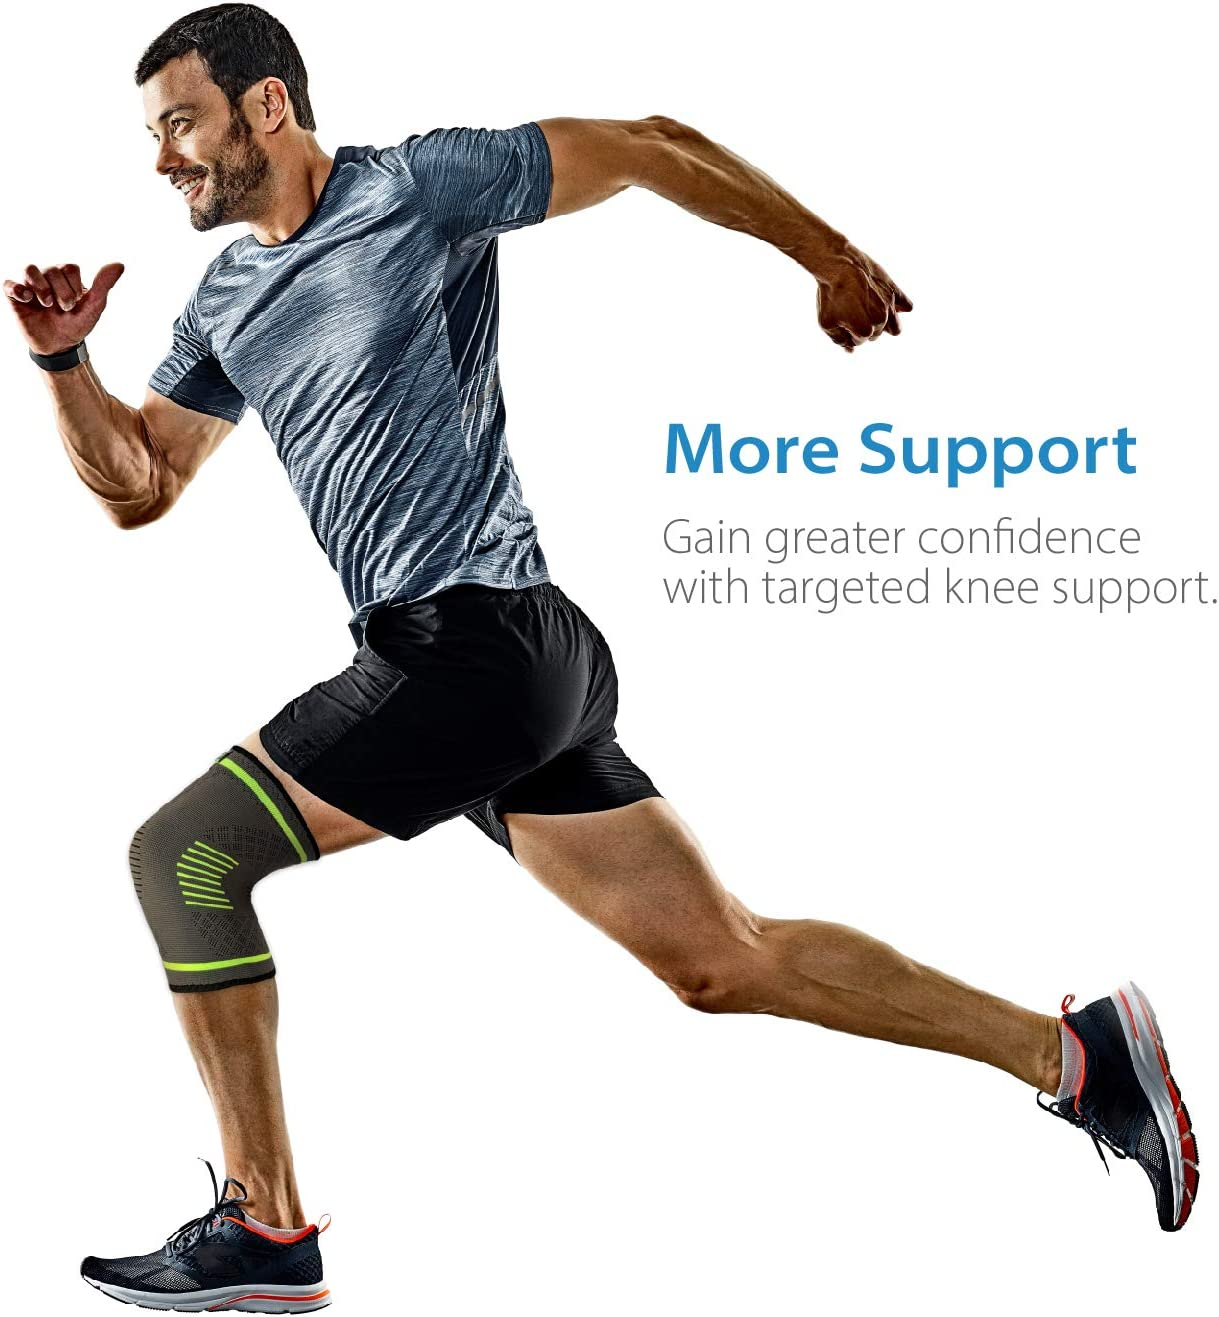 Injury Arthritis Best Knee Sleeve Single Wrap - - Braces and Supports Knee for Pain Relief NatraCure Compression Knee Sleeve Size: Medium and Joint Pain Running Meniscus Tear